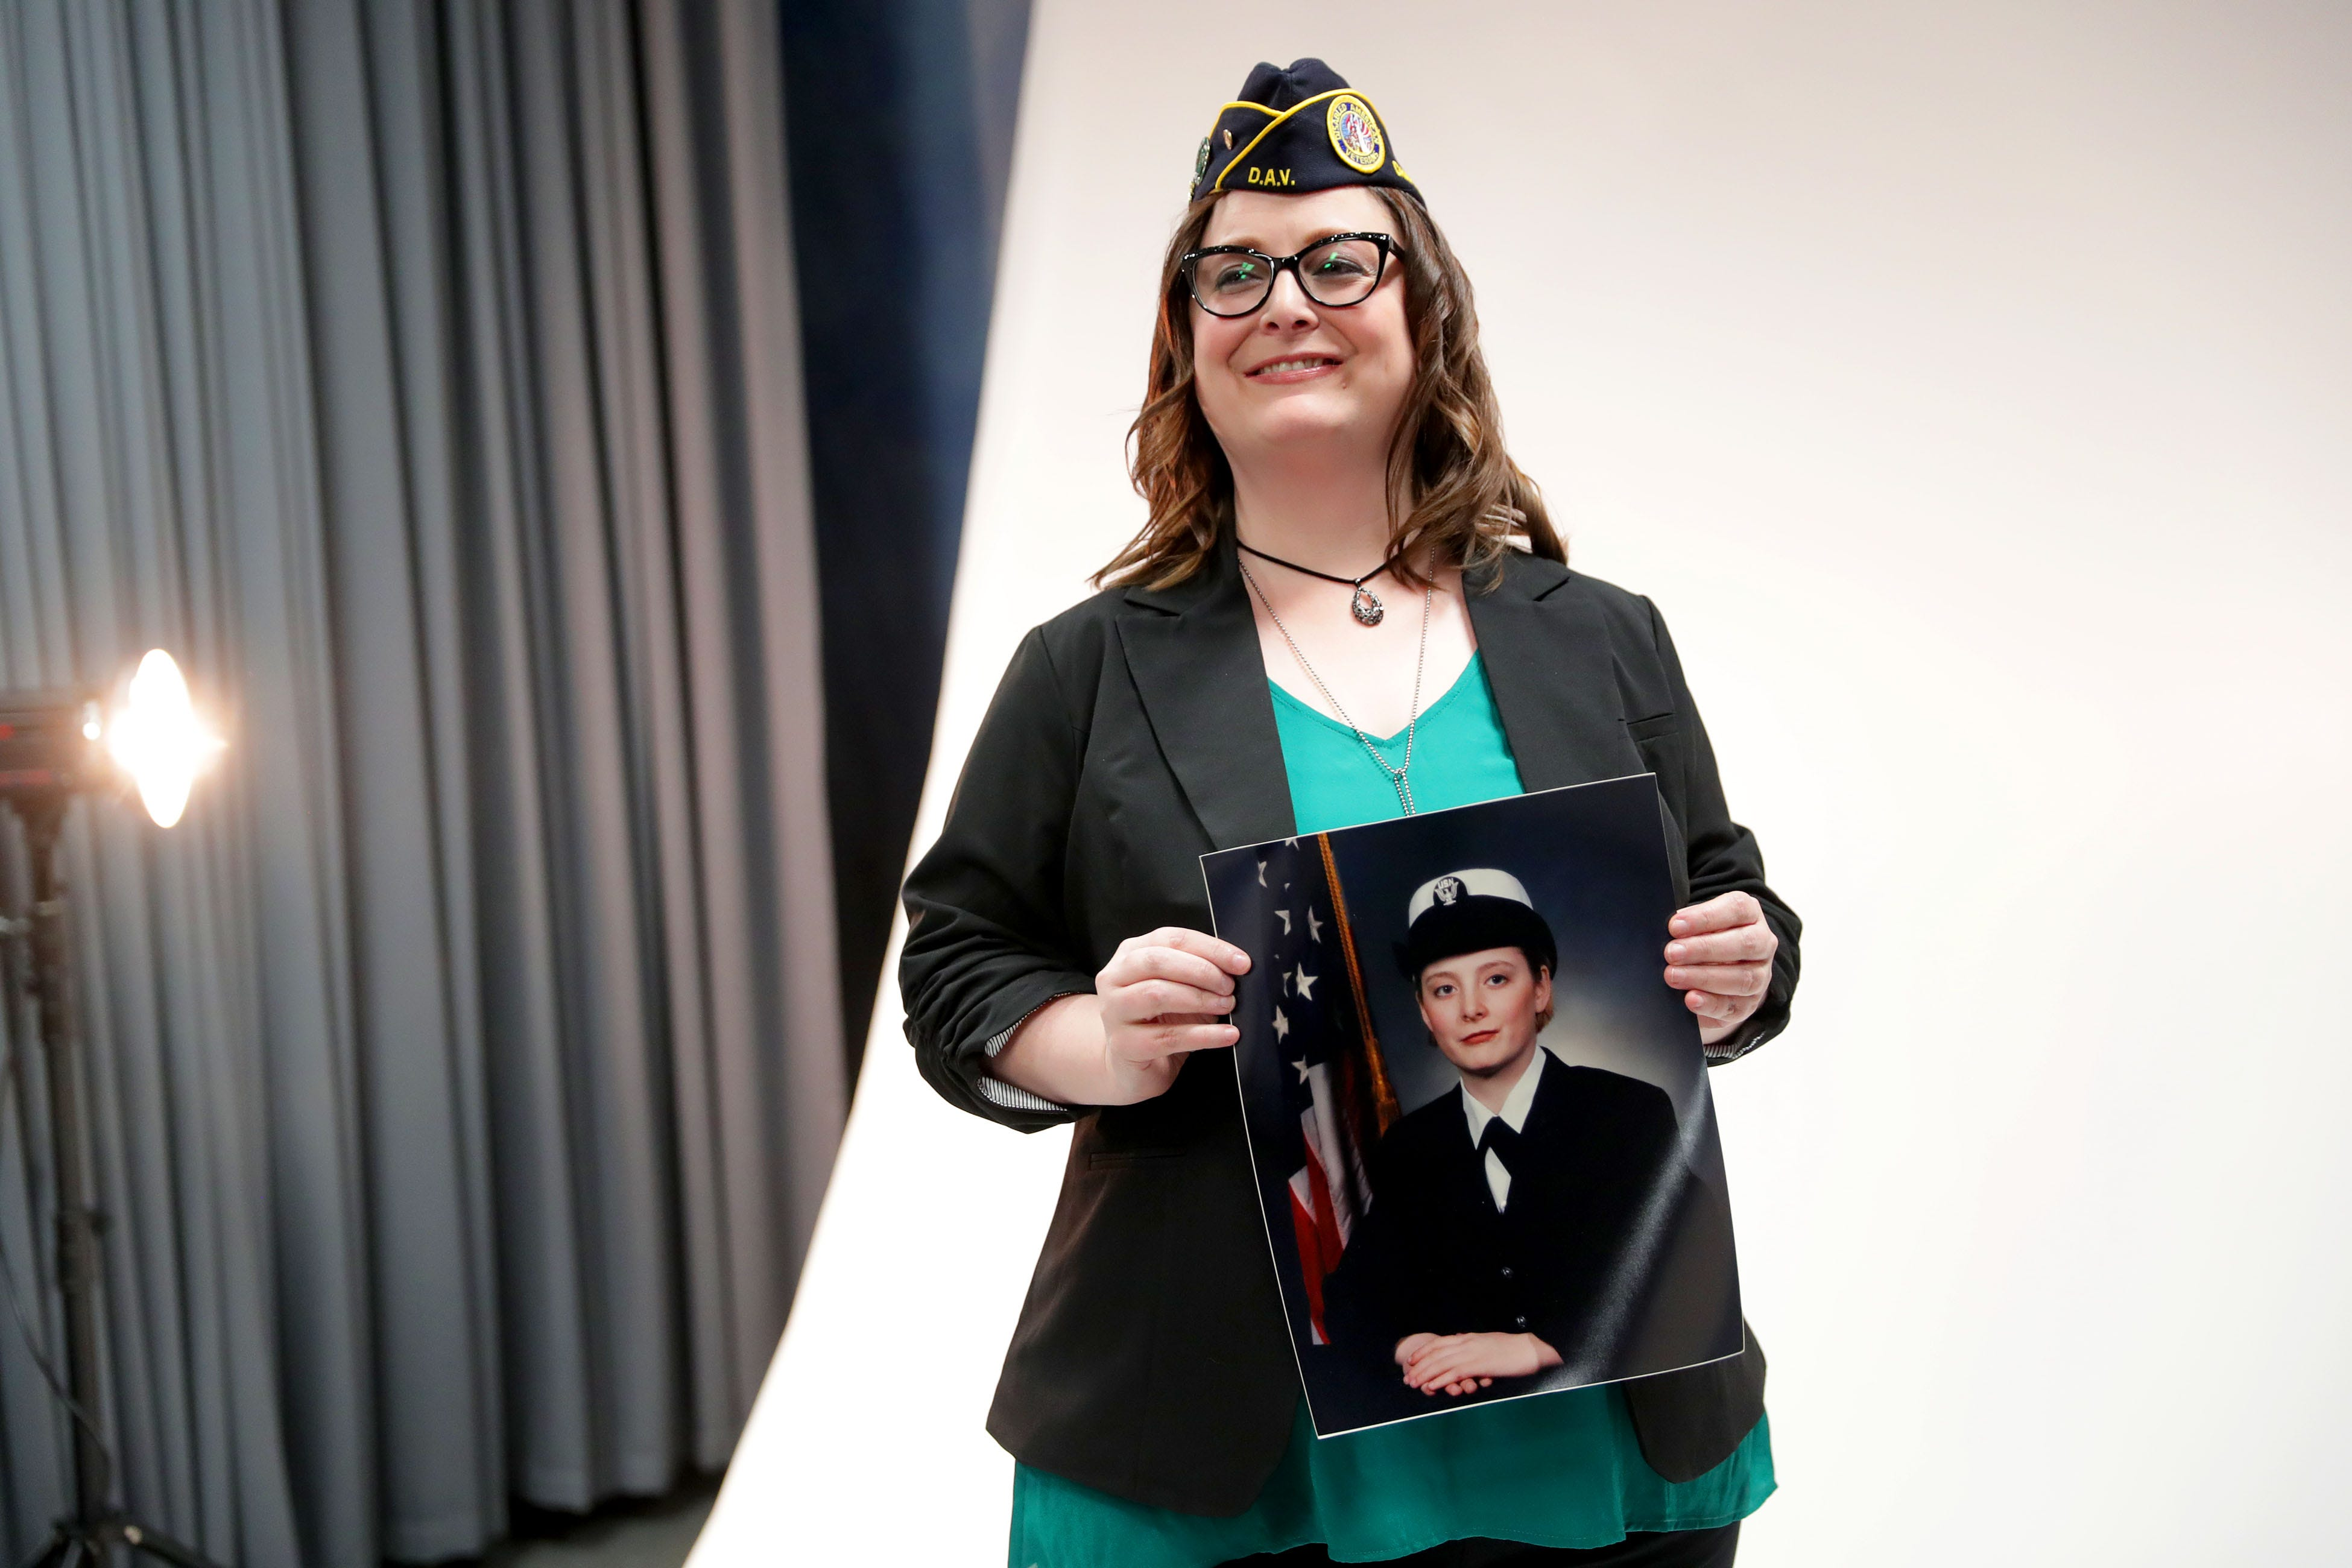 Women veterans are 'not invisible': New exhibit will feature photos of Wisconsin's female vets   Milwaukee Journal Sentinel